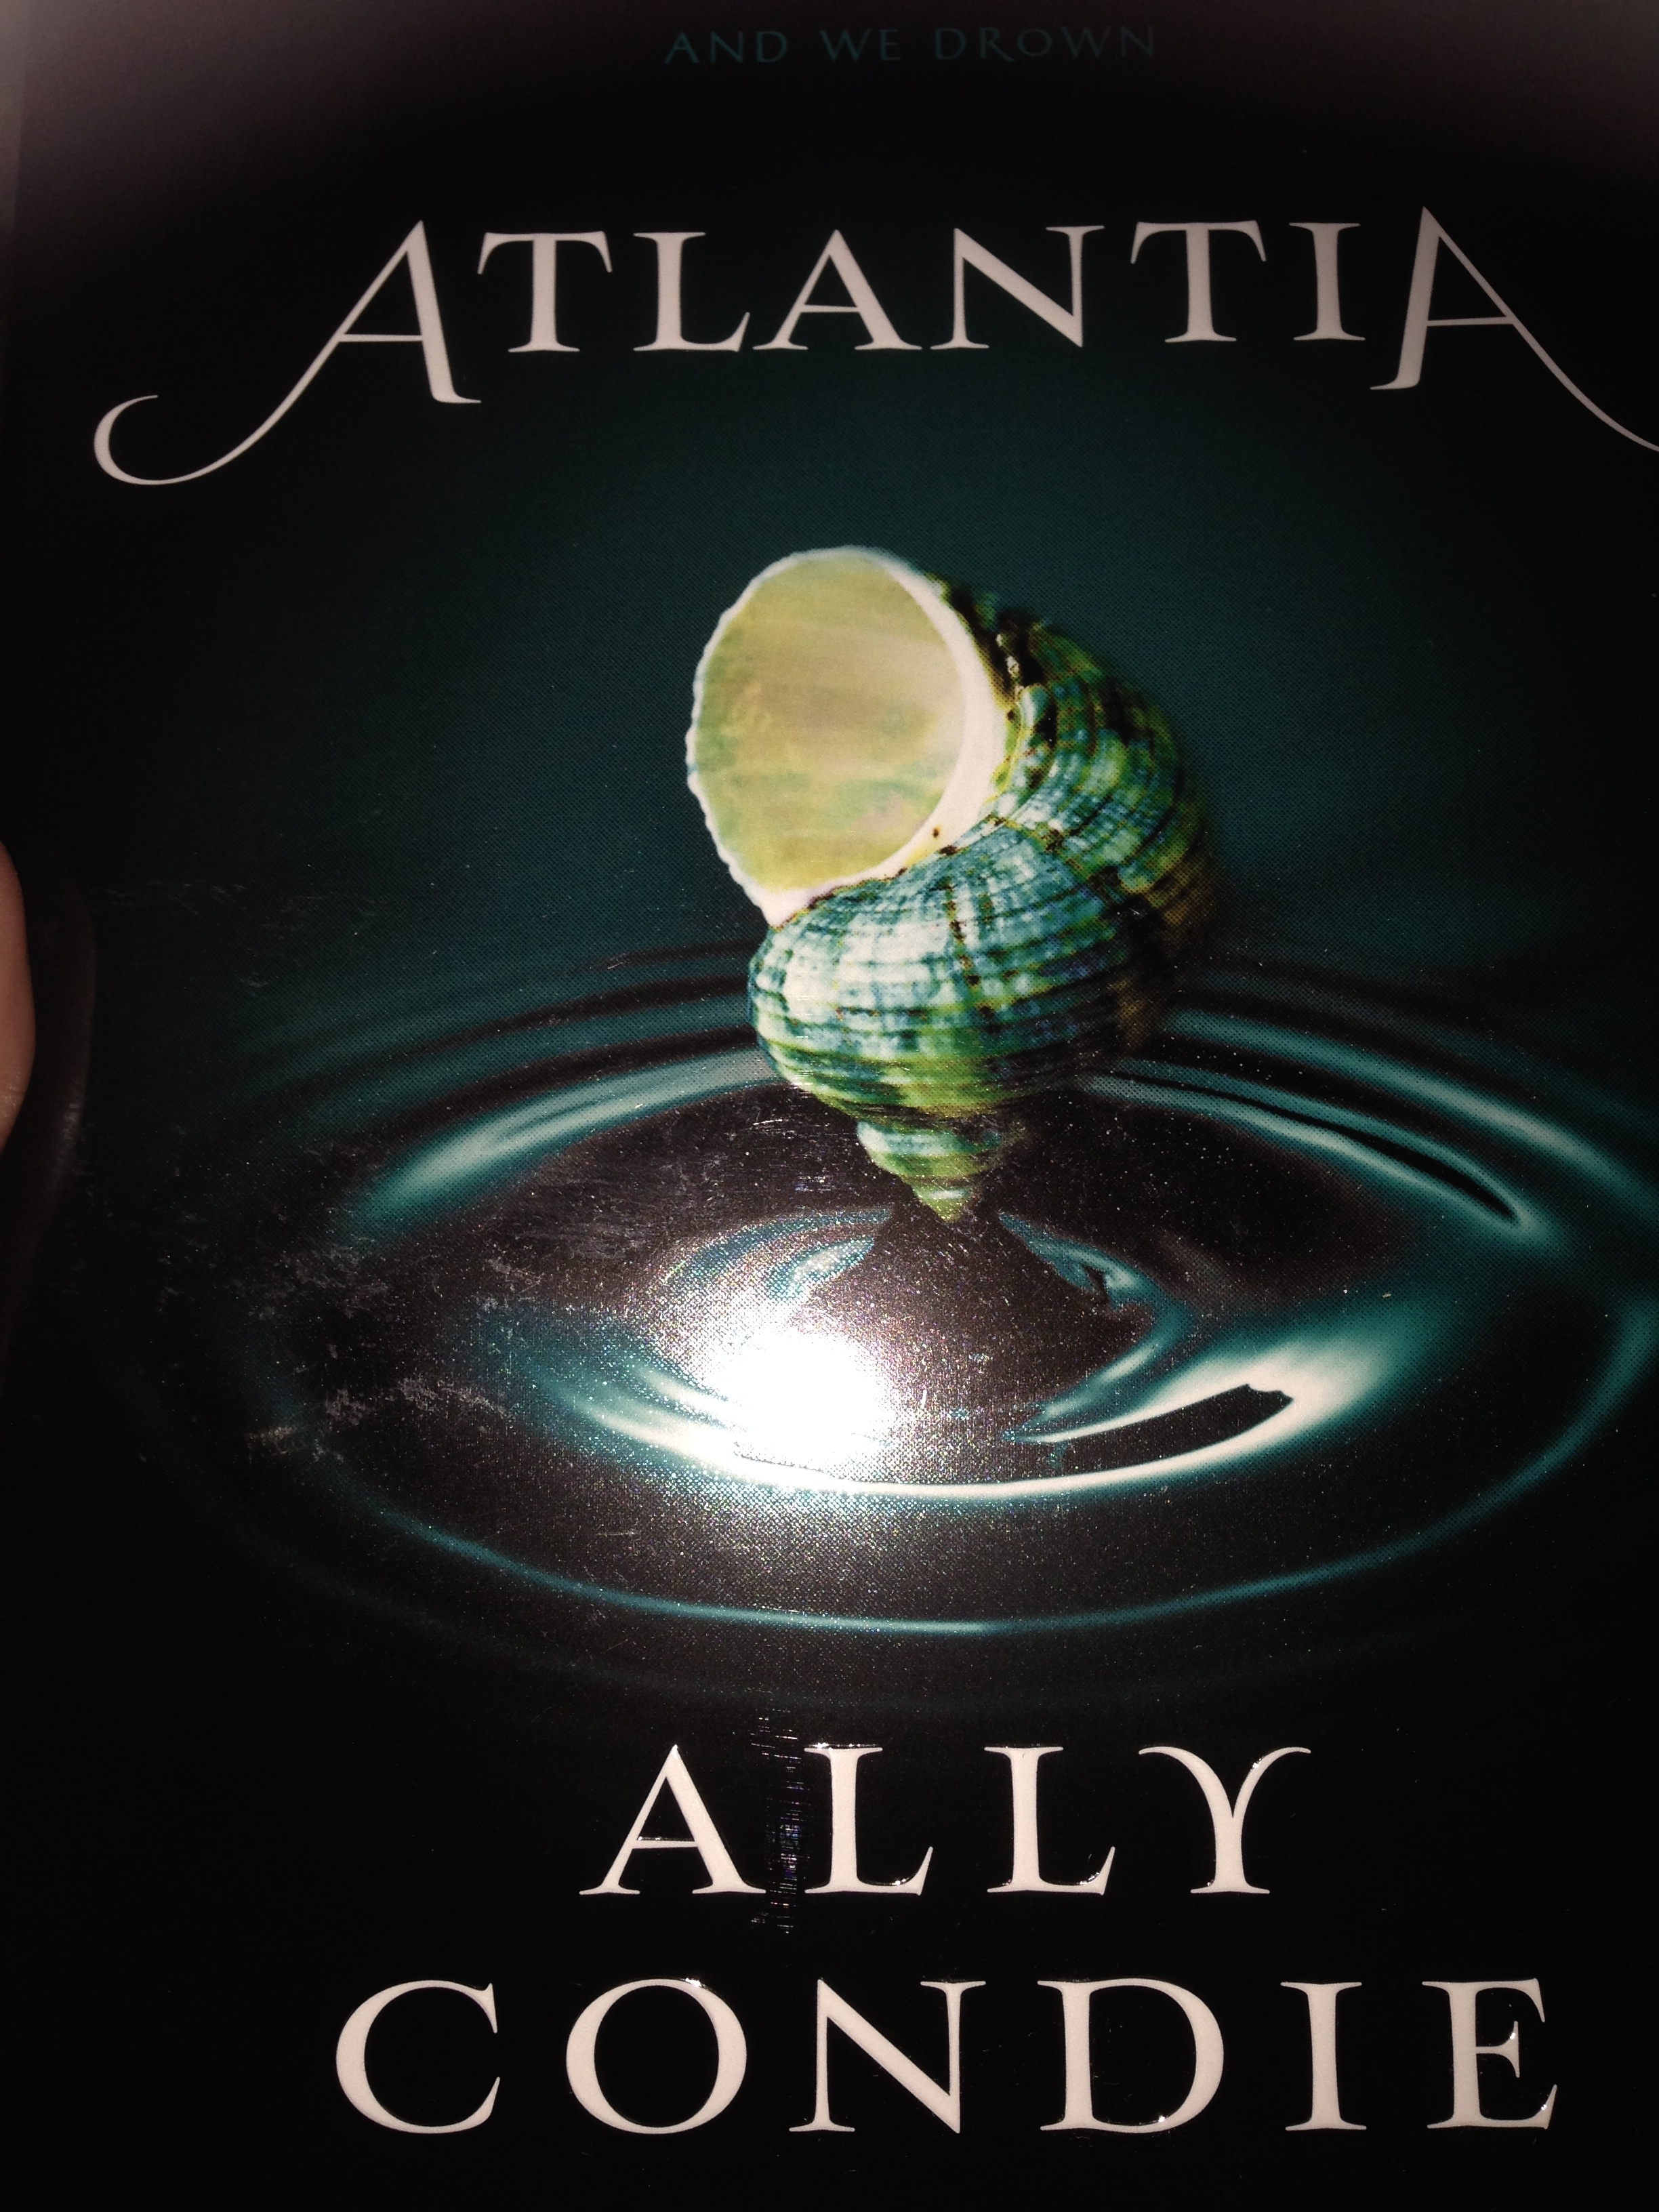 Atlantia by Ally Condie | An Unconventional Librarian